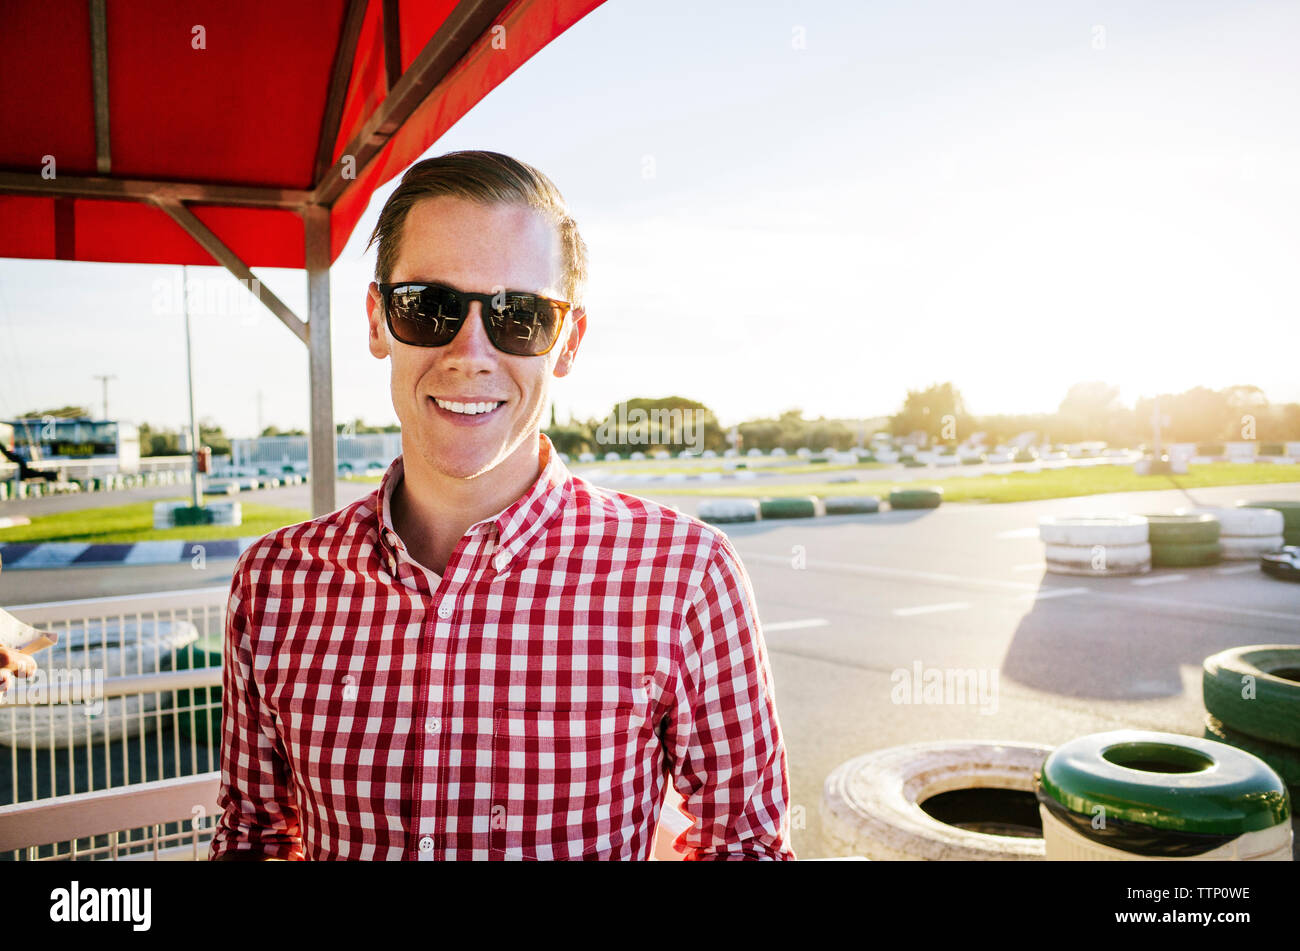 Close-up of smiling man standing at motor racing track - Stock Image